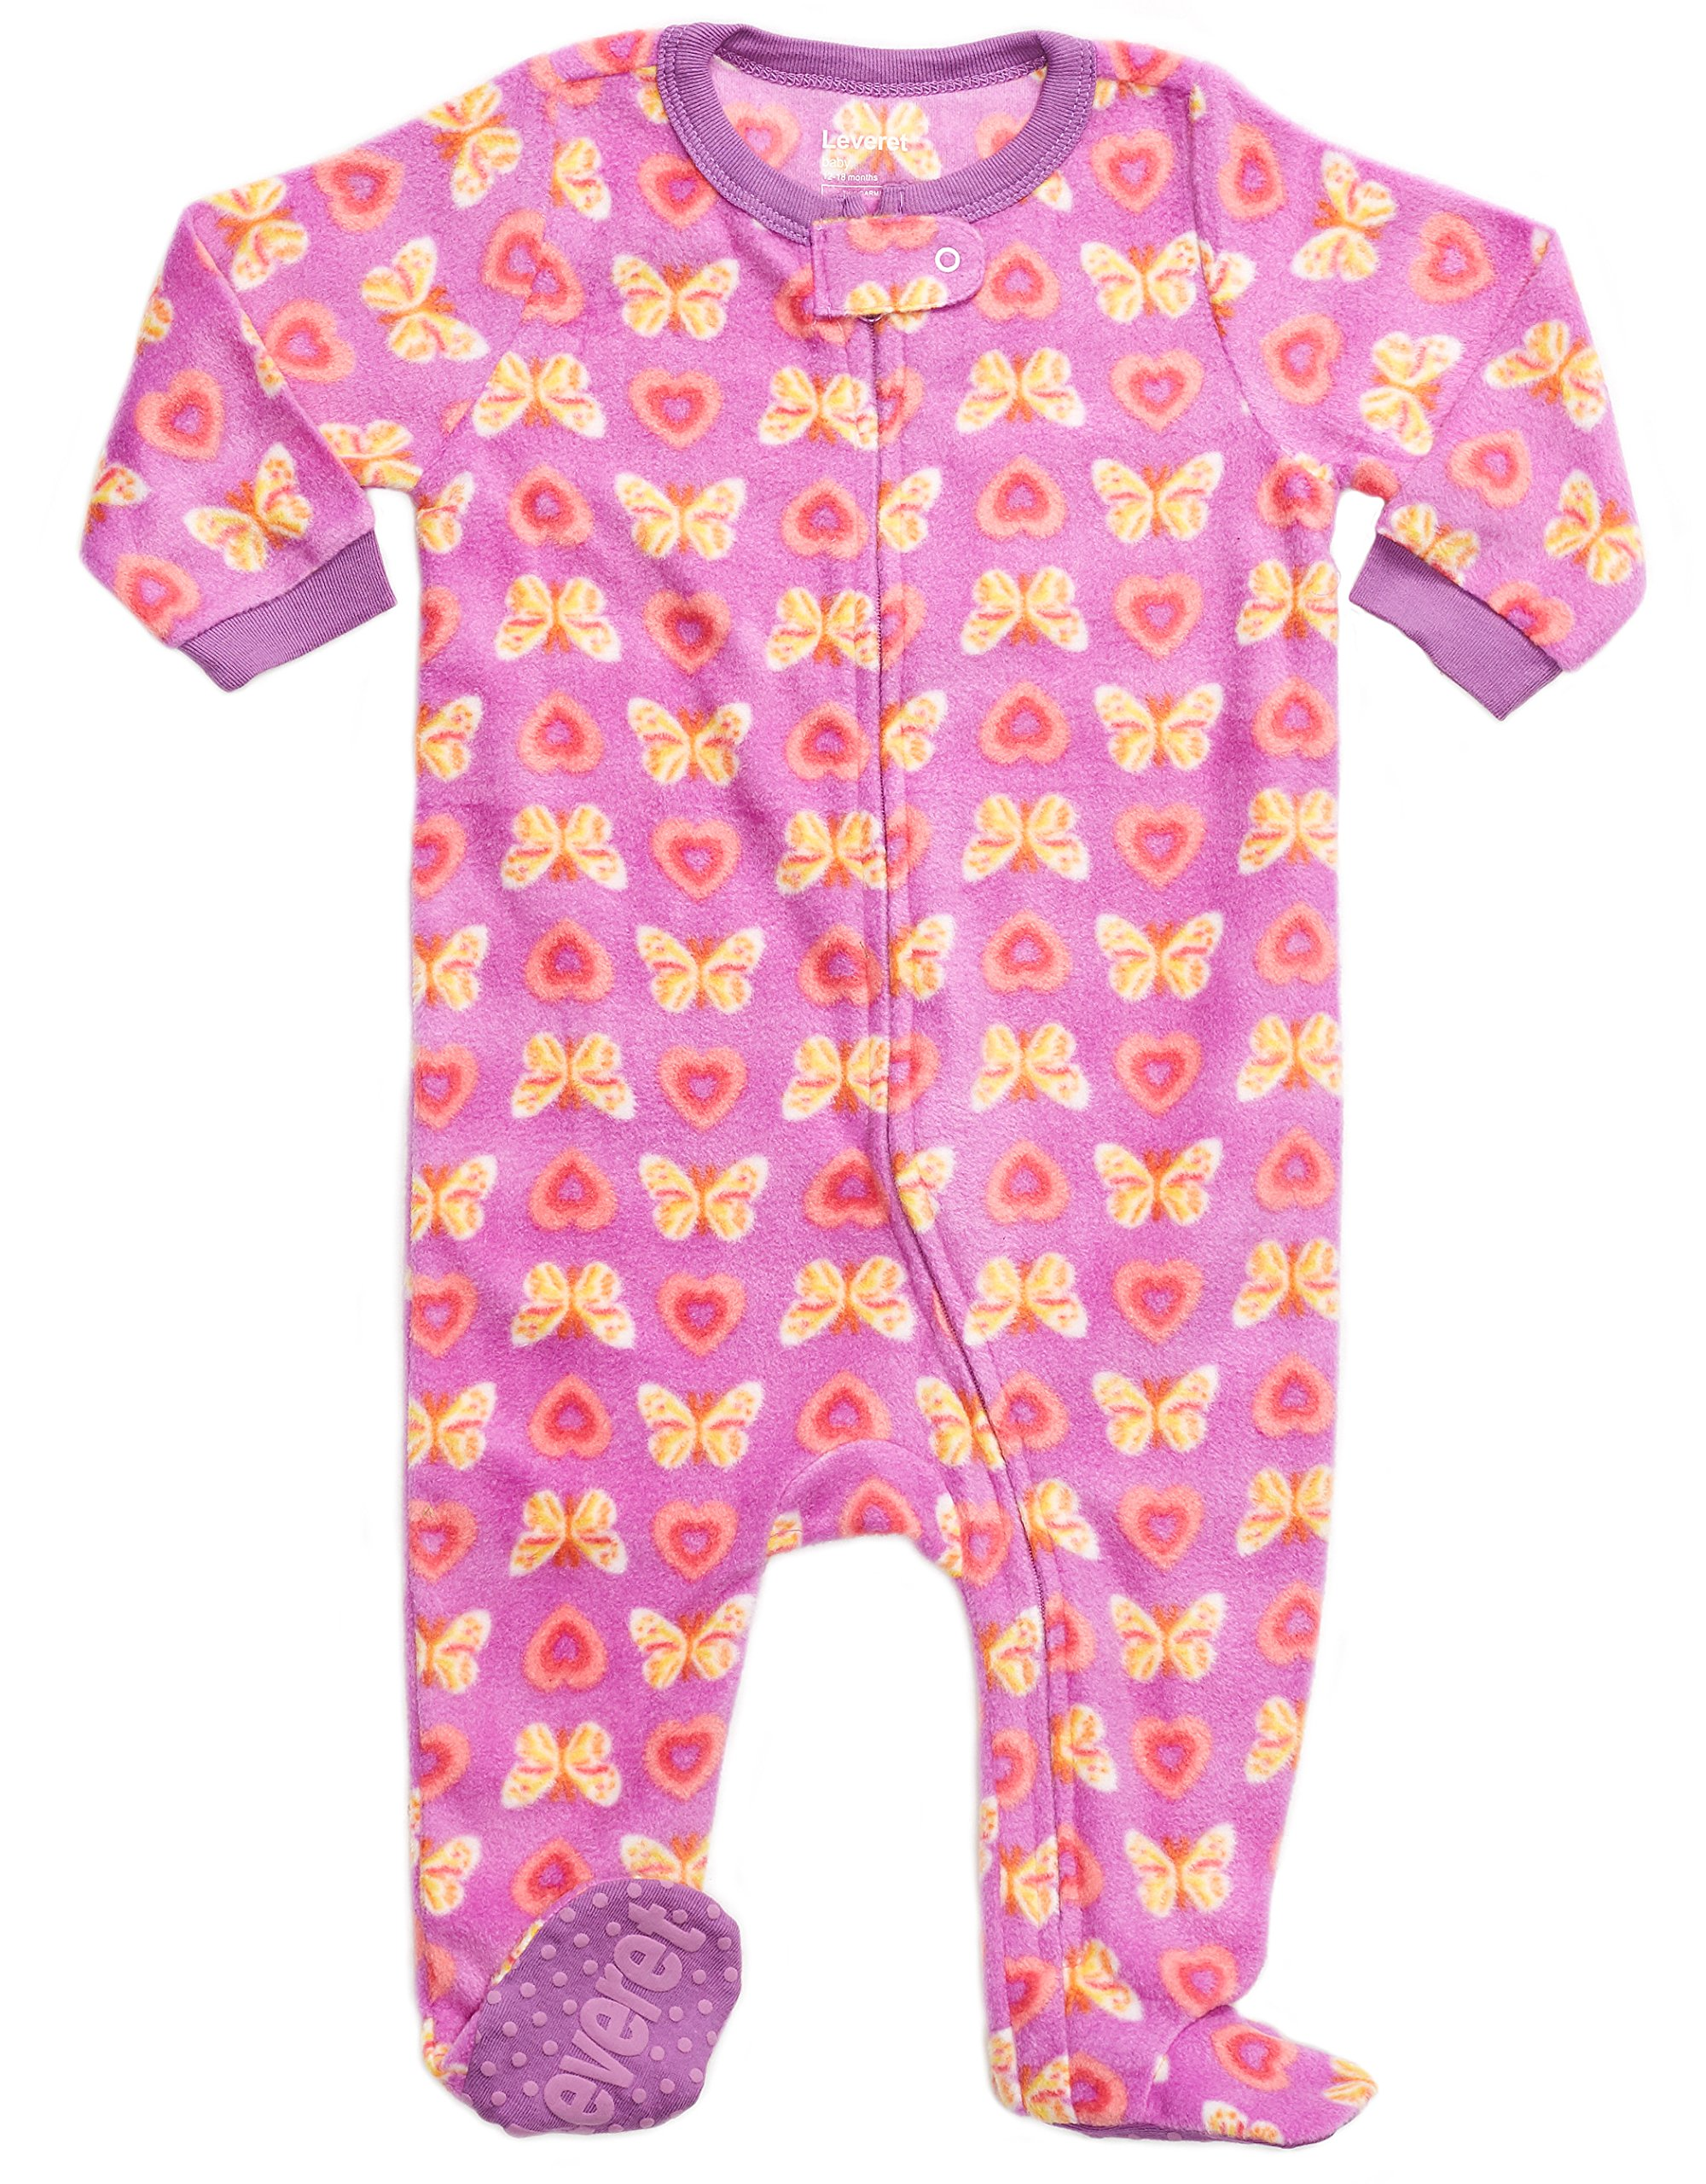 8ea9b66110 Leveret Fleece Baby Girls Footed Pajamas Sleeper Kids   Toddler Pajamas (3  Months-5 Toddler)